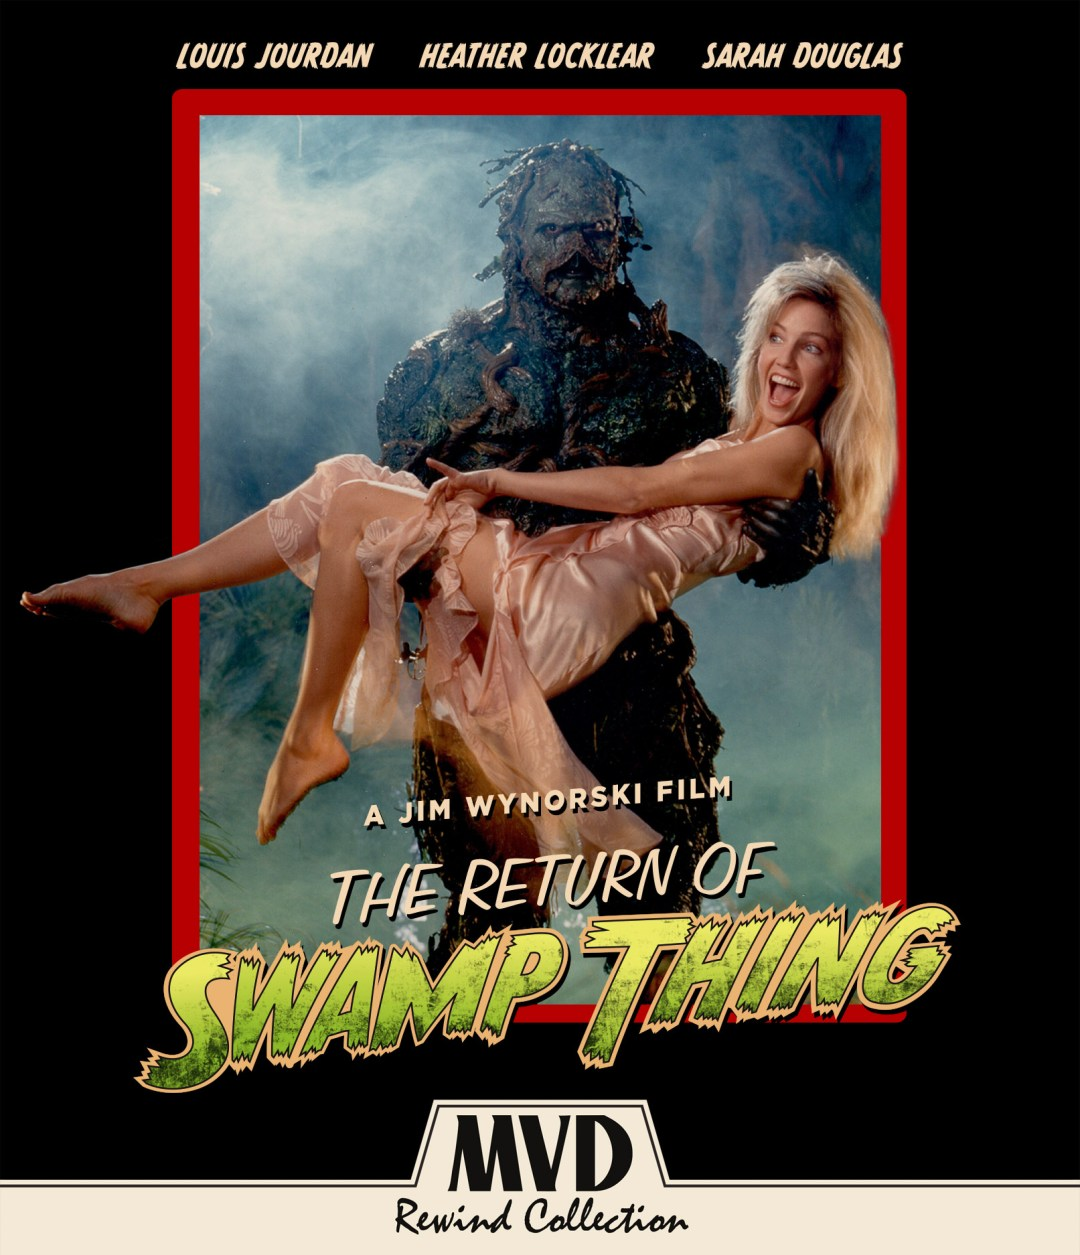 'The Return of the Swamp Thing' (1989) Available on Blu-ray/DVD on May 8th